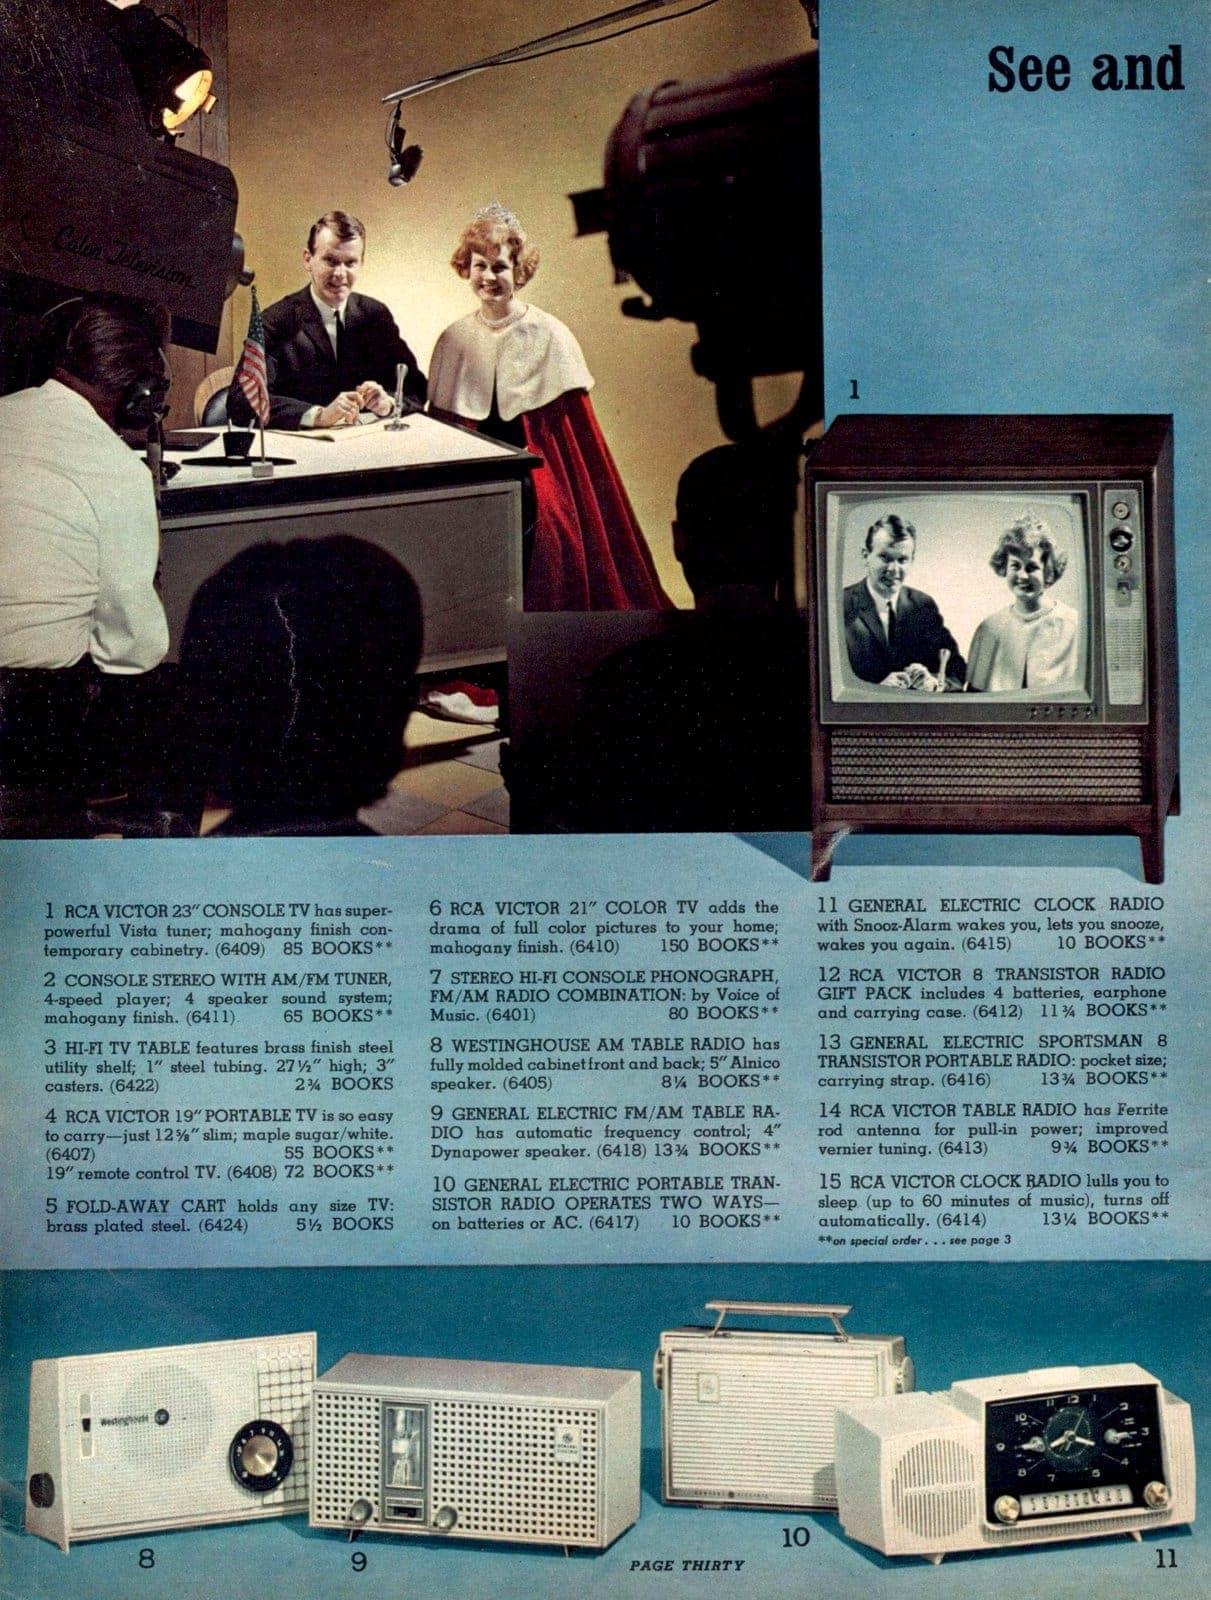 Vintage Tv sets and clock radios - RCA Victor, General Electric, Westinghouse